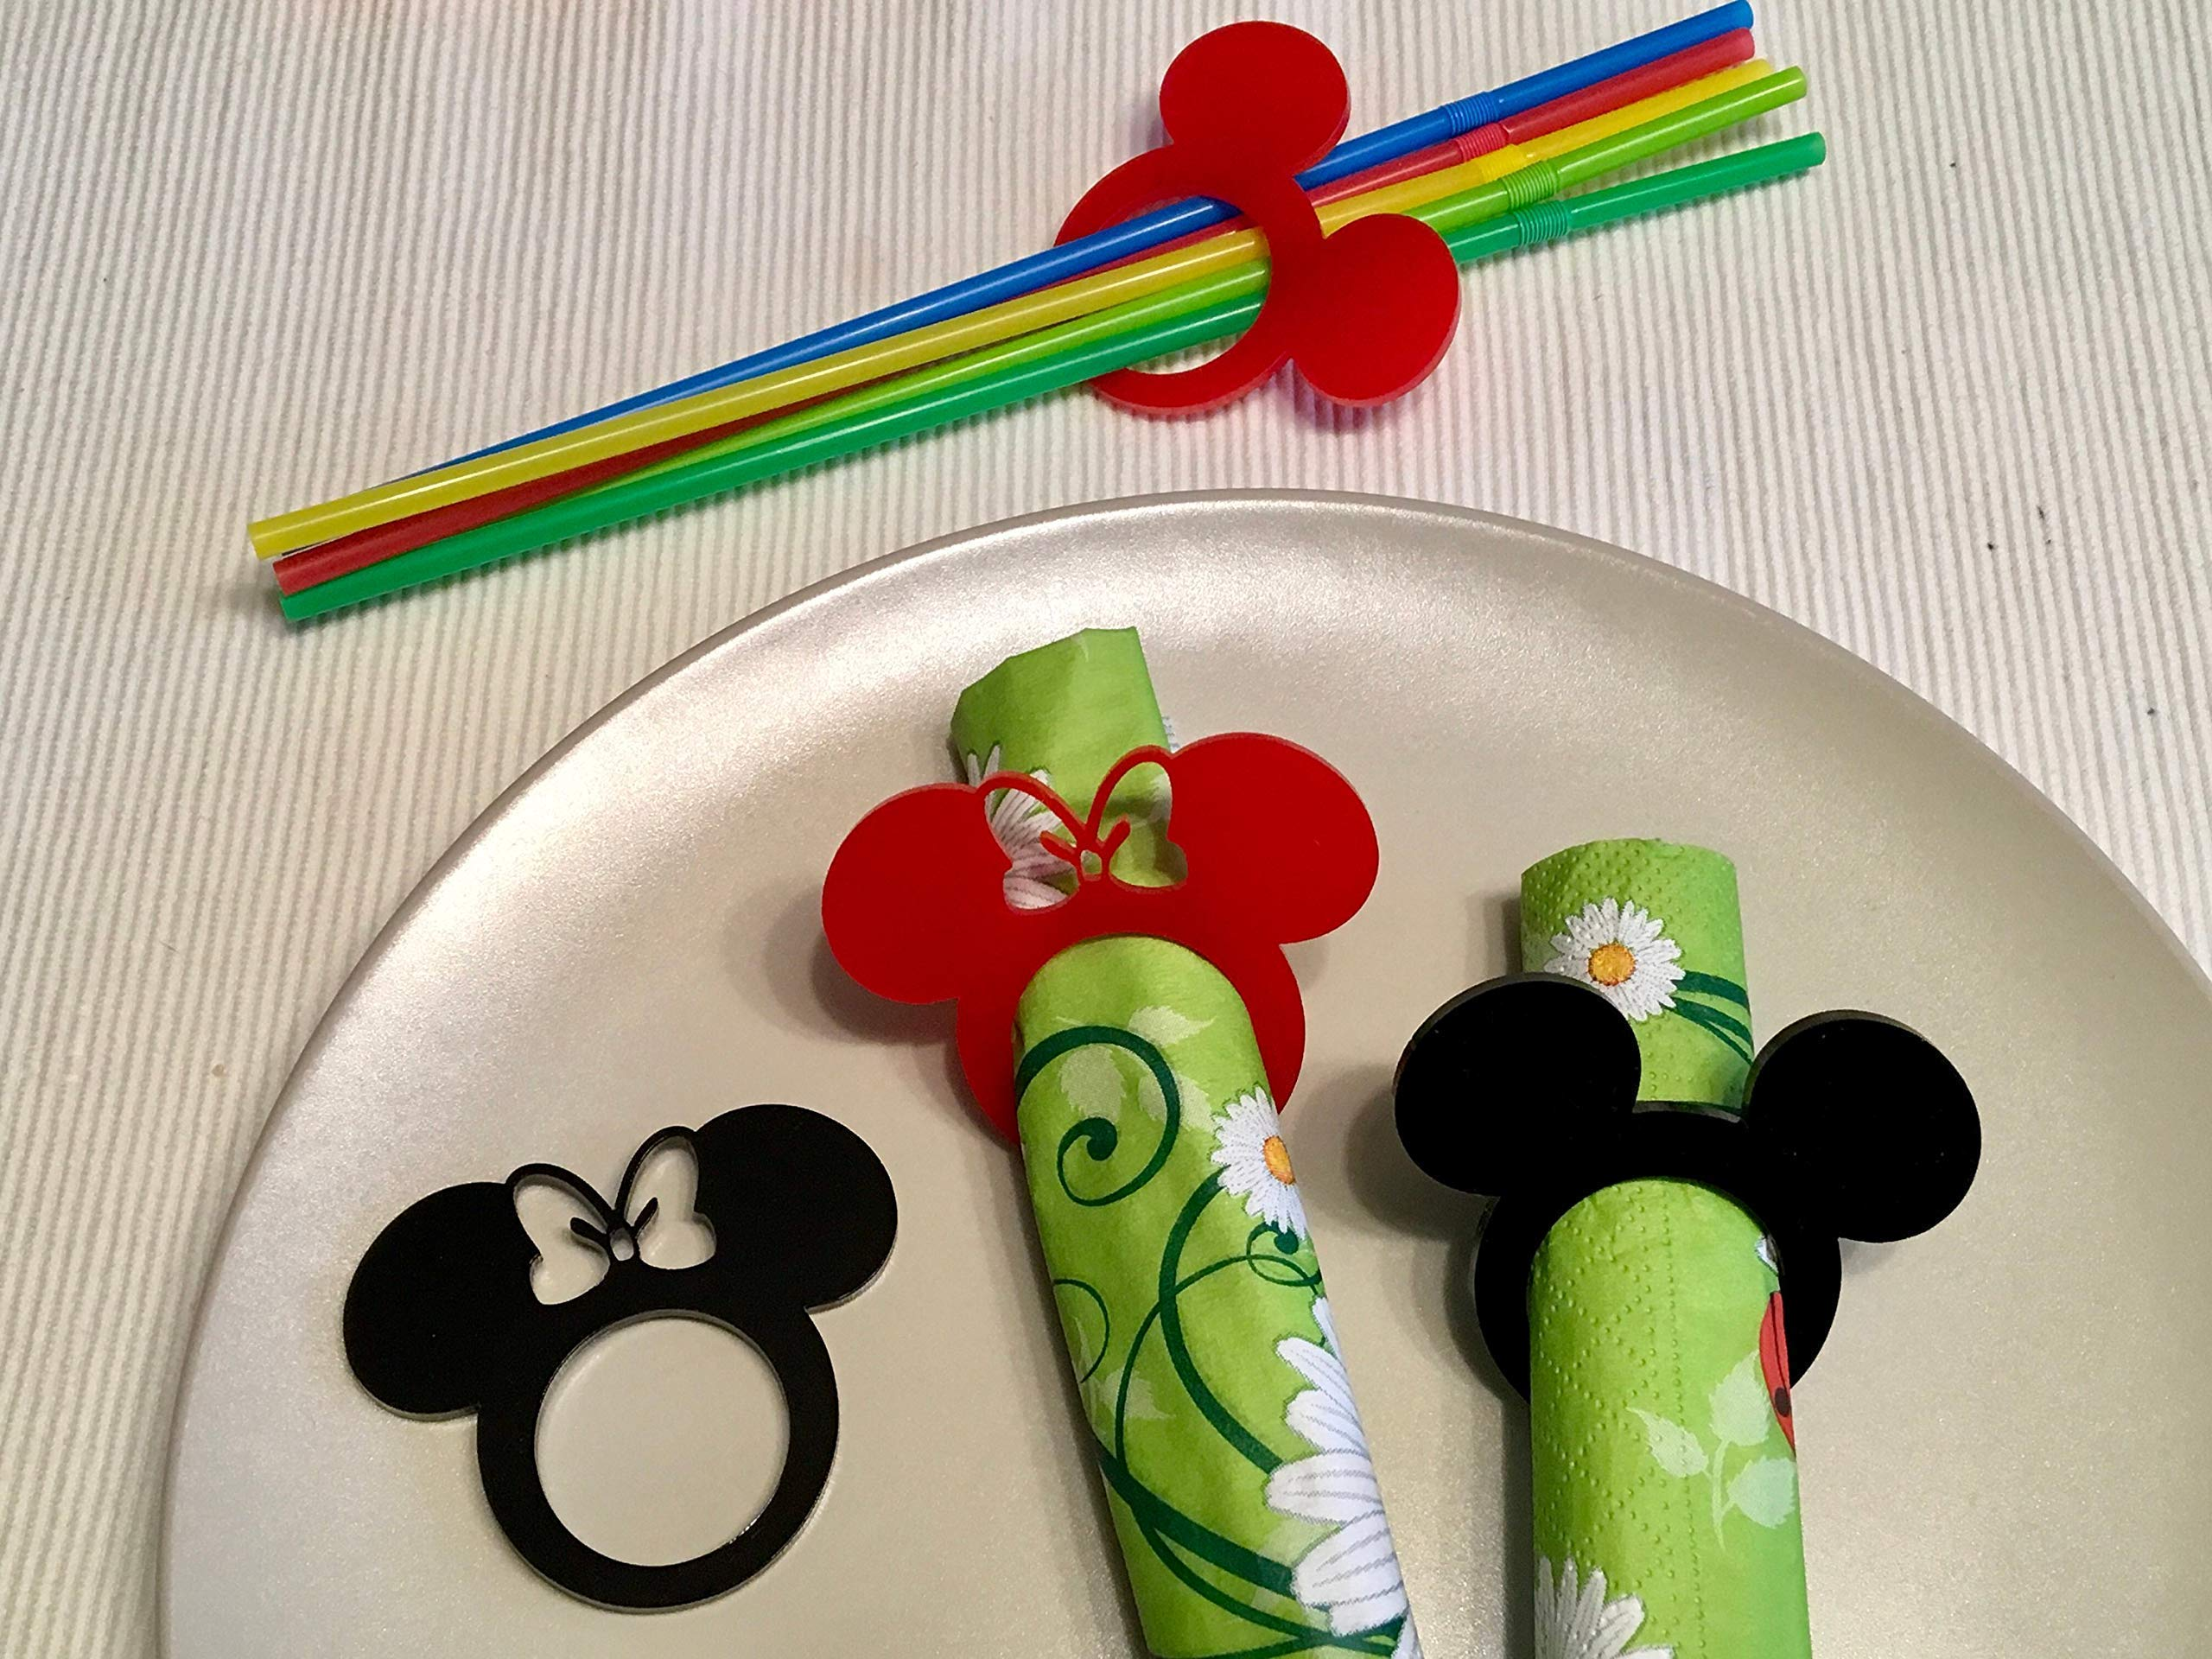 Mickey Mouse Ears Minnie Mouse with Bow Acrylic Napkin Ring Holders for Kids Birthday Party Decor Mickey Theme Party Favors Disney Decorations Tableware Cartoon Table Settings Clubhouse Cloth Napkins